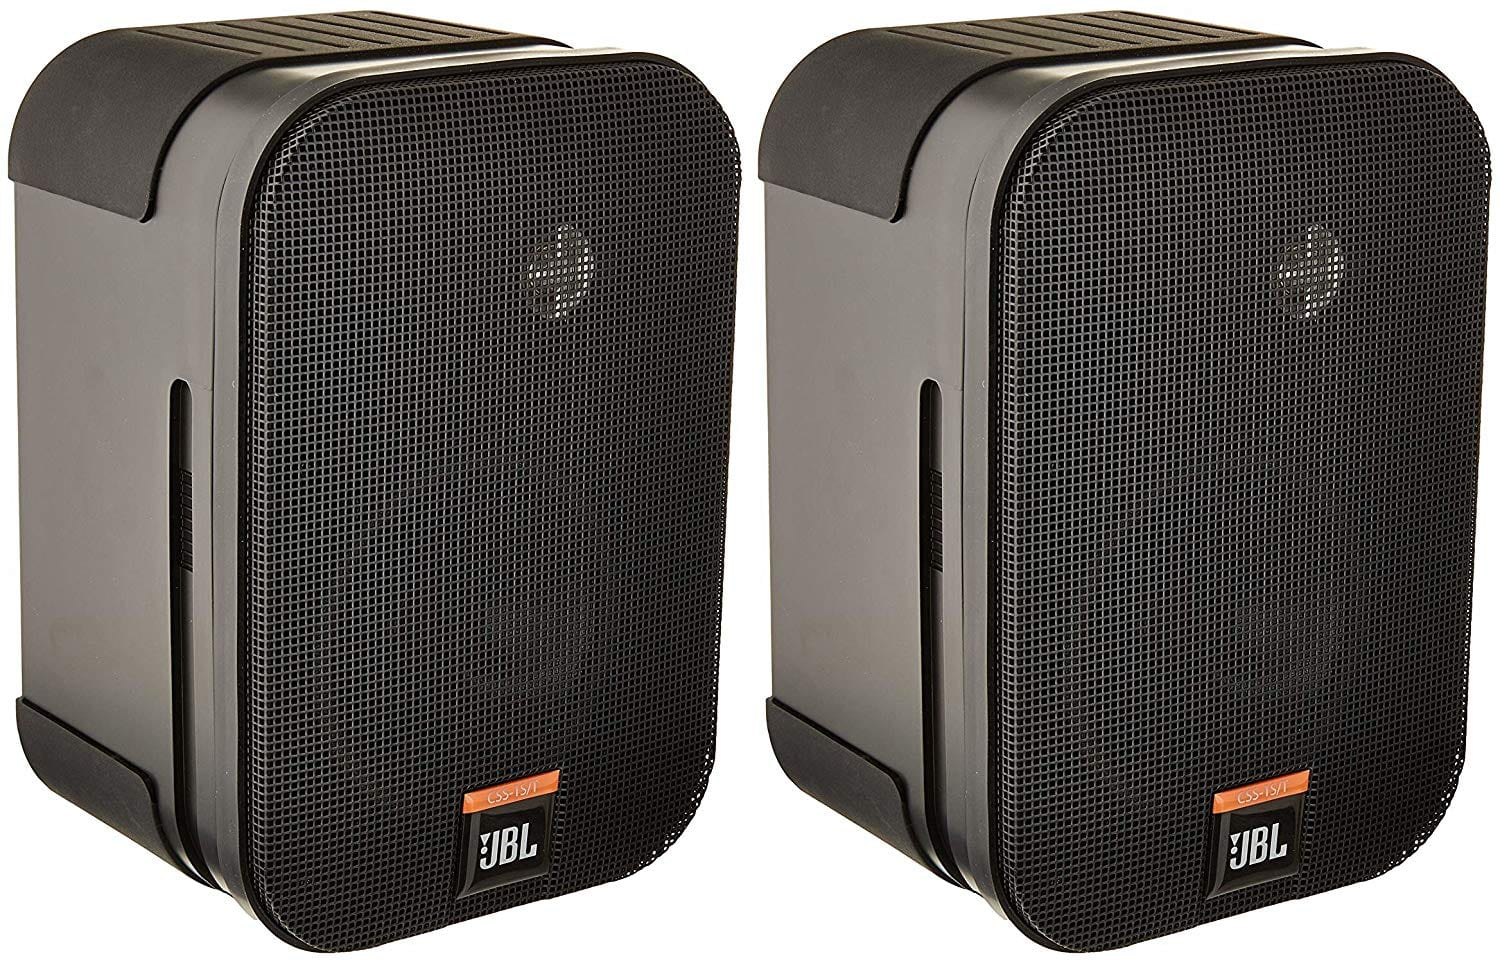 JBL CSS-1S T Two-Way Compact Ohm Black Loudspeaker (Sold As a Pair)